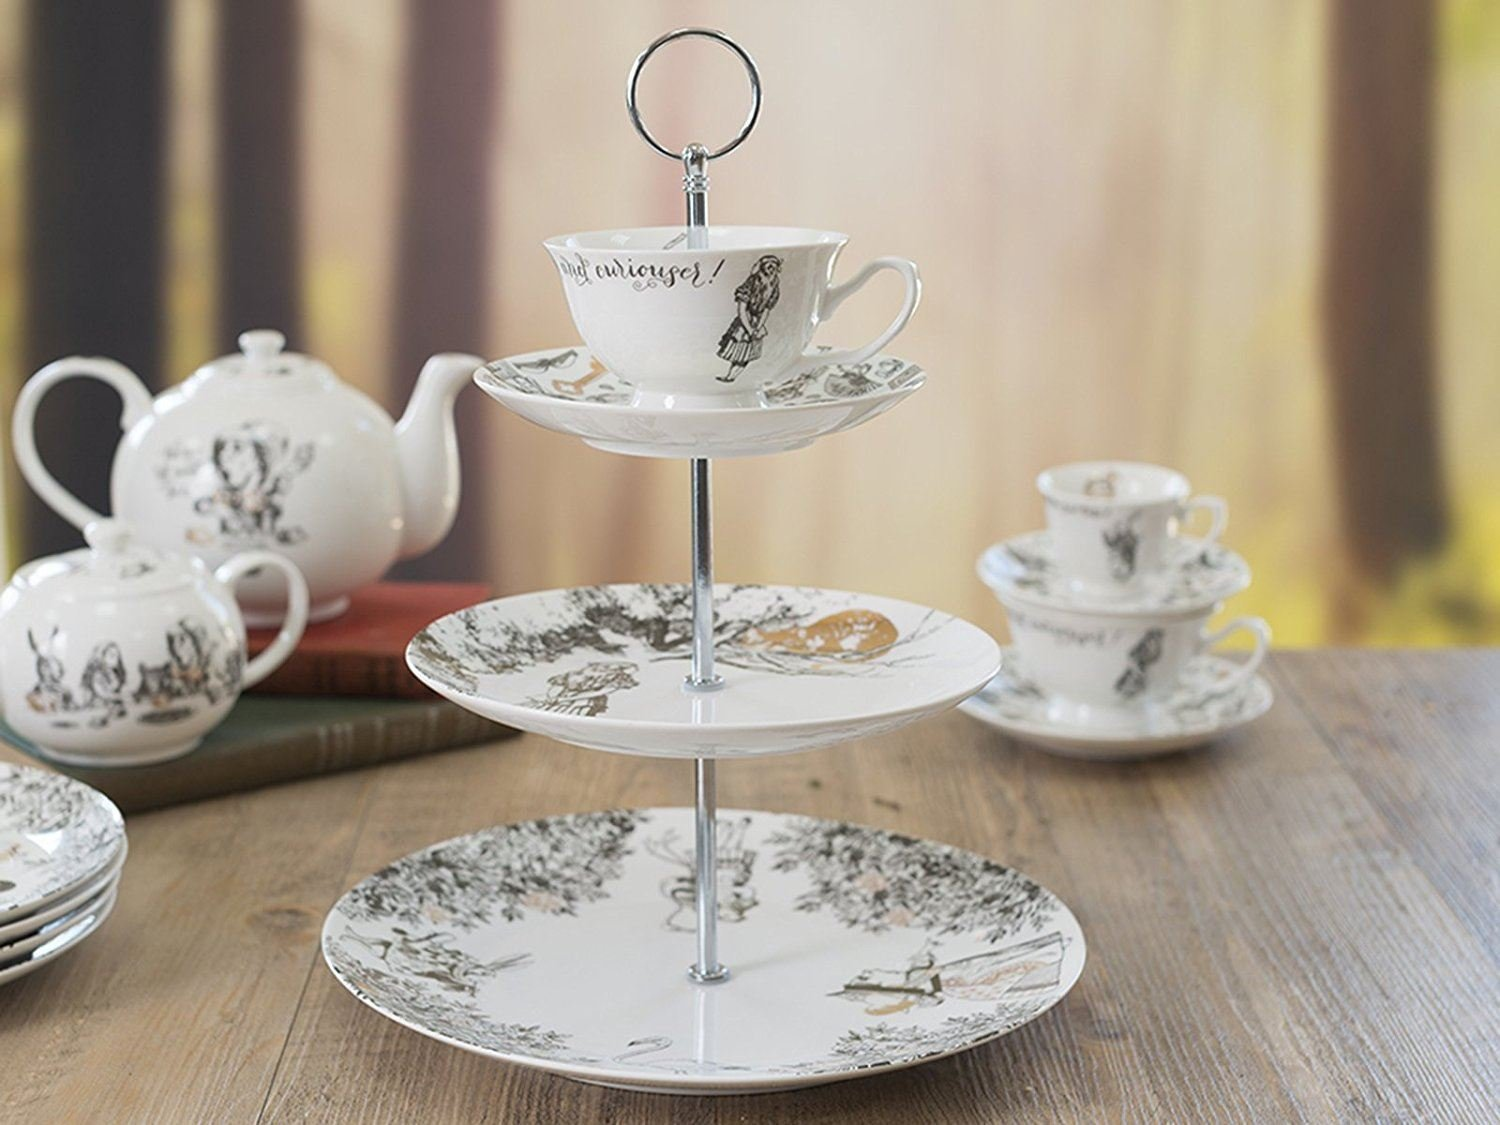 Creative Tops V&A Alice in Wonderland 3 Tier China Teacup Cake Stand Gift Boxed by CreativeTops (Image #4)